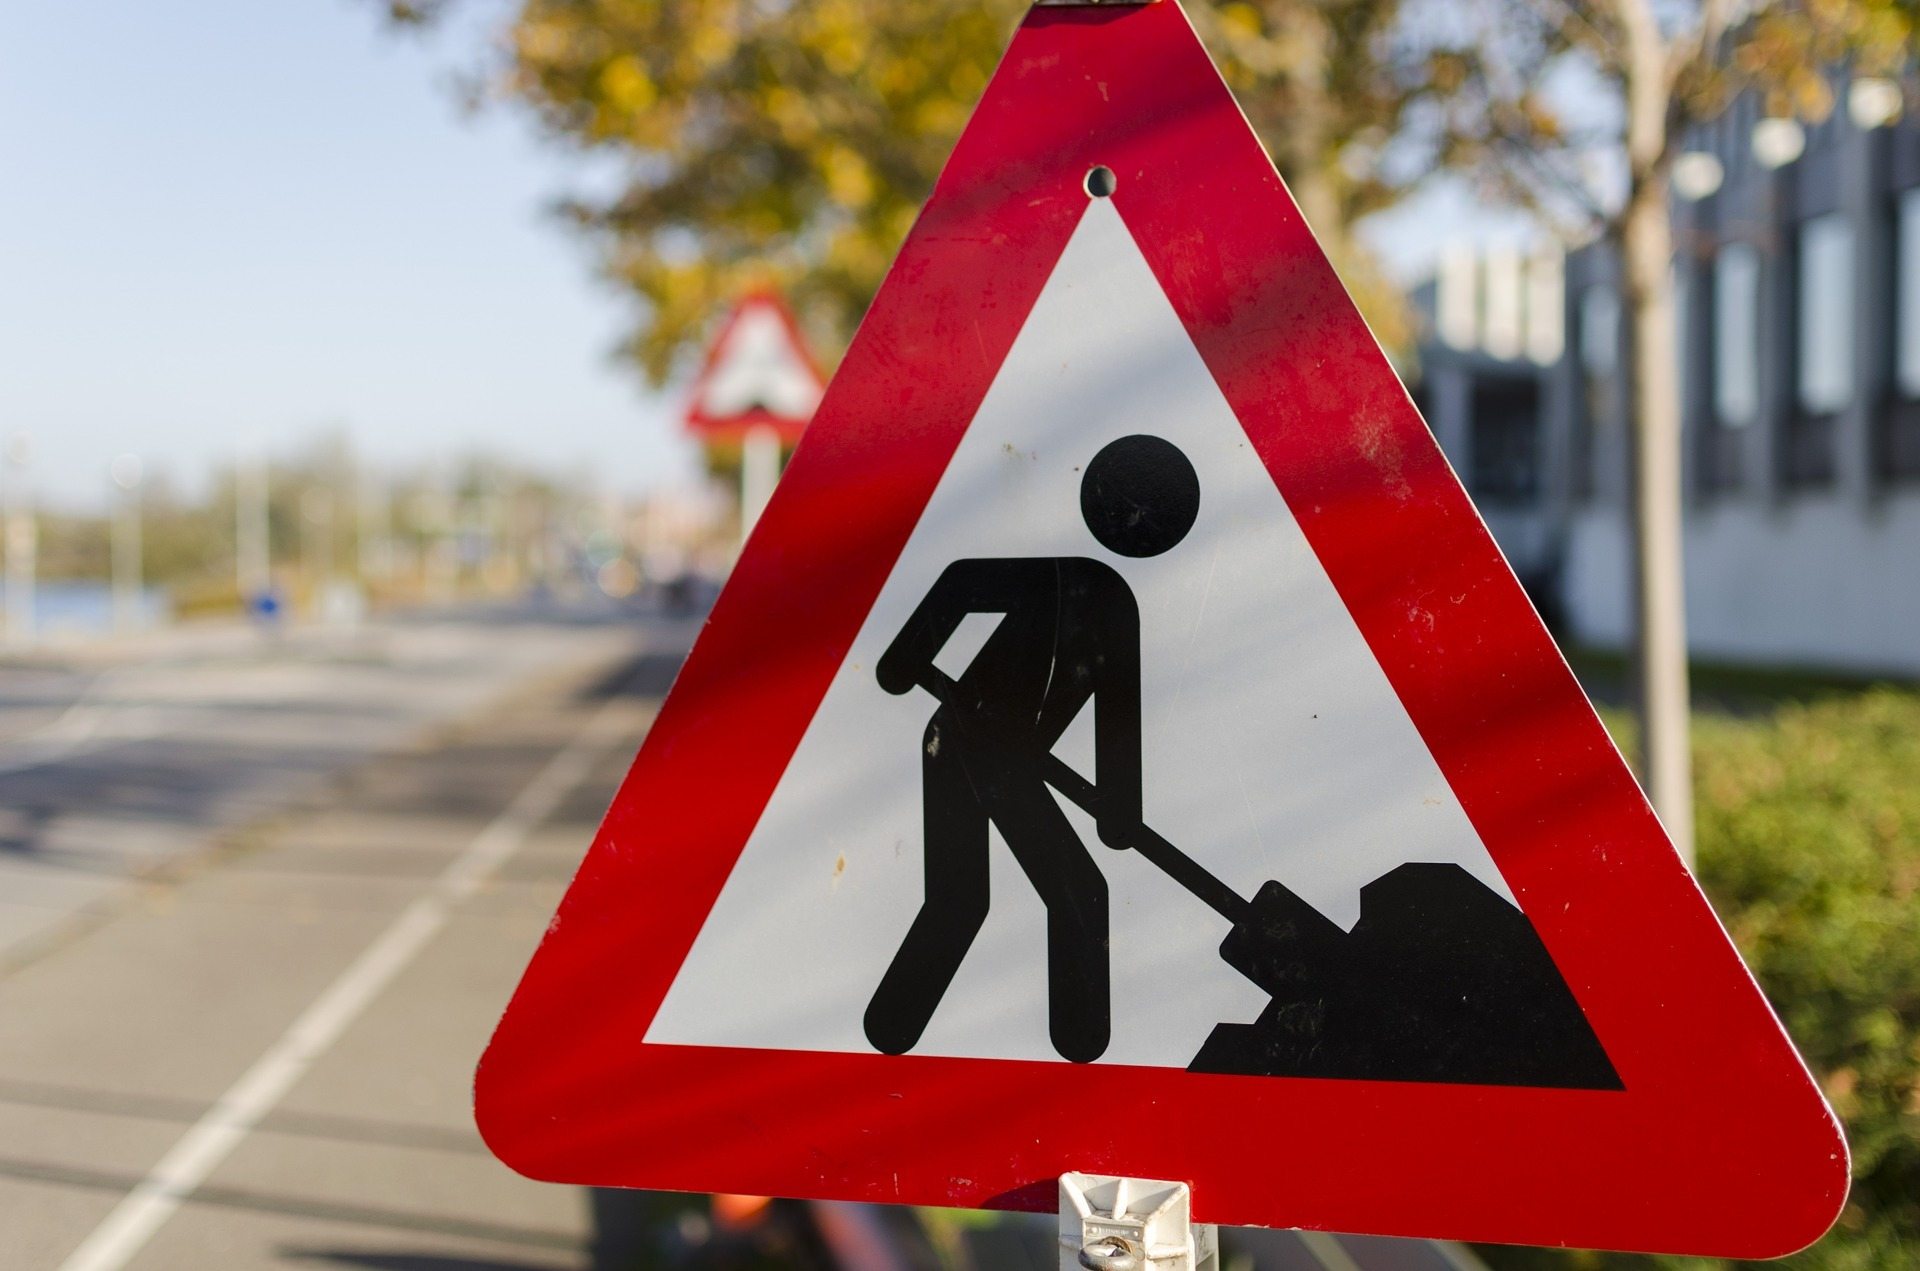 The roadworks between Jct 5 and Jct 4a have been removed